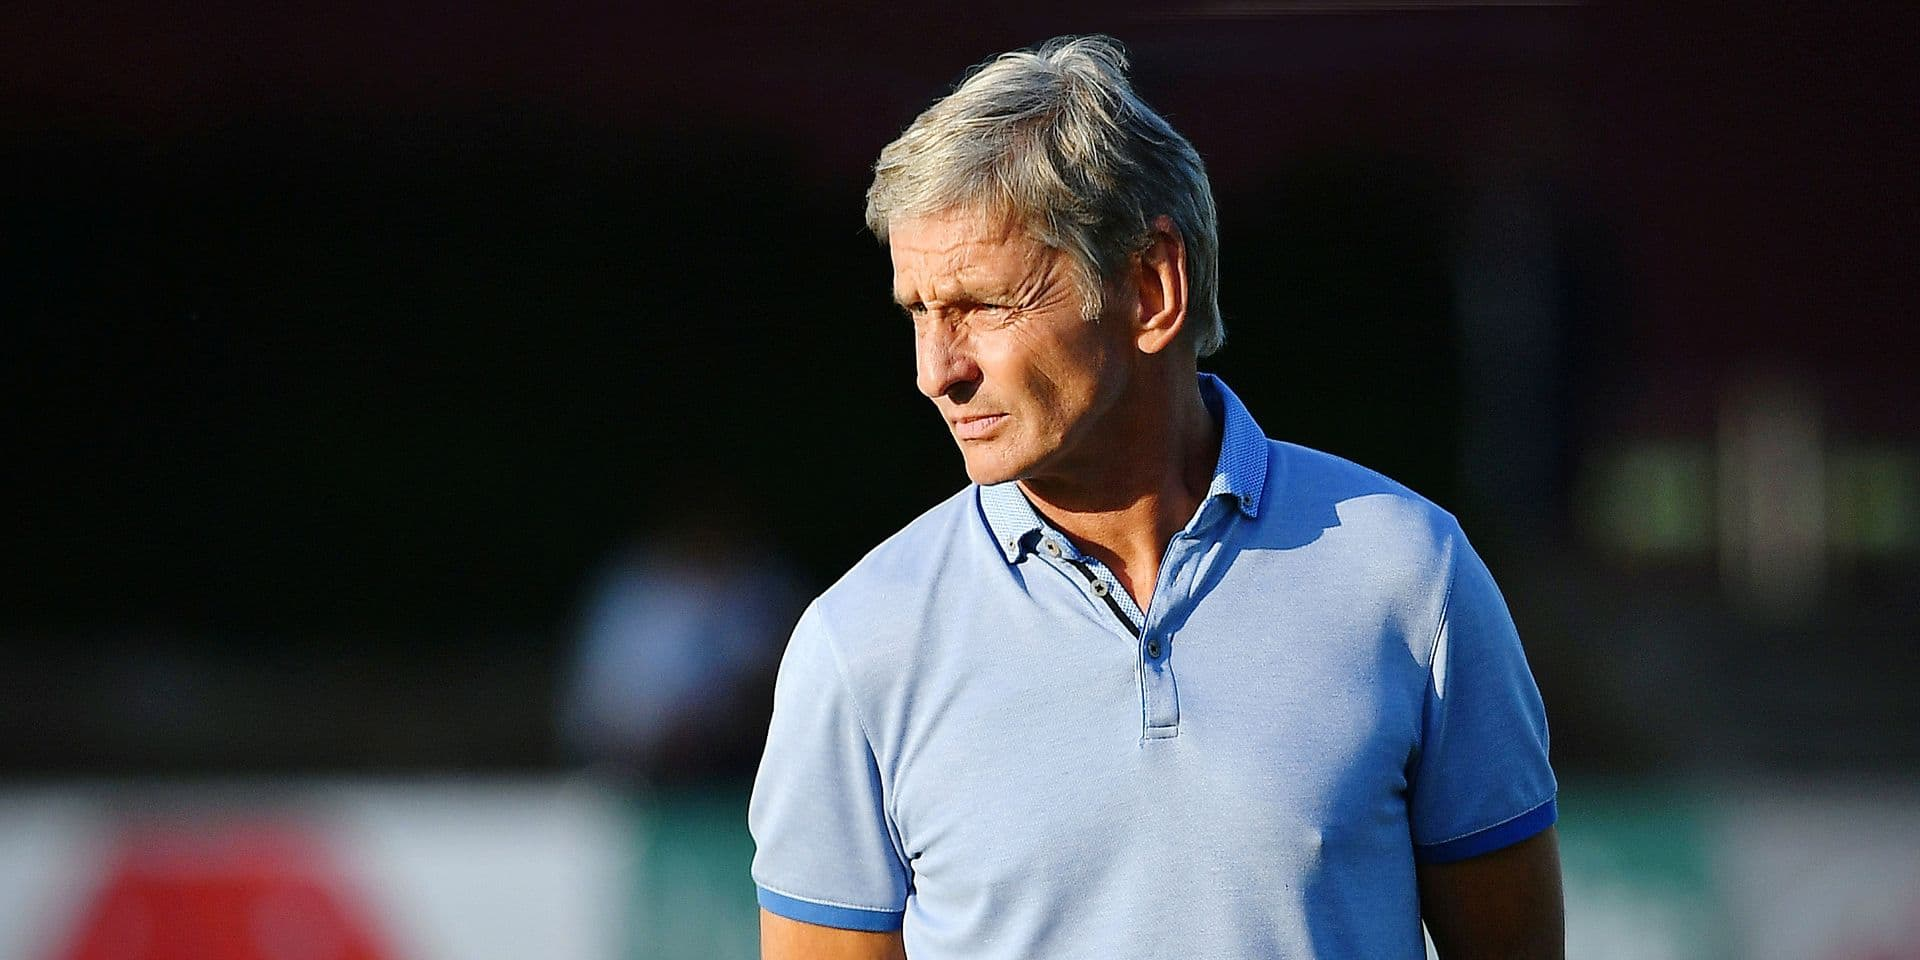 Cercle's head coach Jose Riga pictured during a friendly soccer game between KSV Oudenaarde and 1b Proximus League team Cercle Brugge in Oudenaarde, Wednesday 05 July 2017. BELGA PHOTO DAVID STOCKMAN